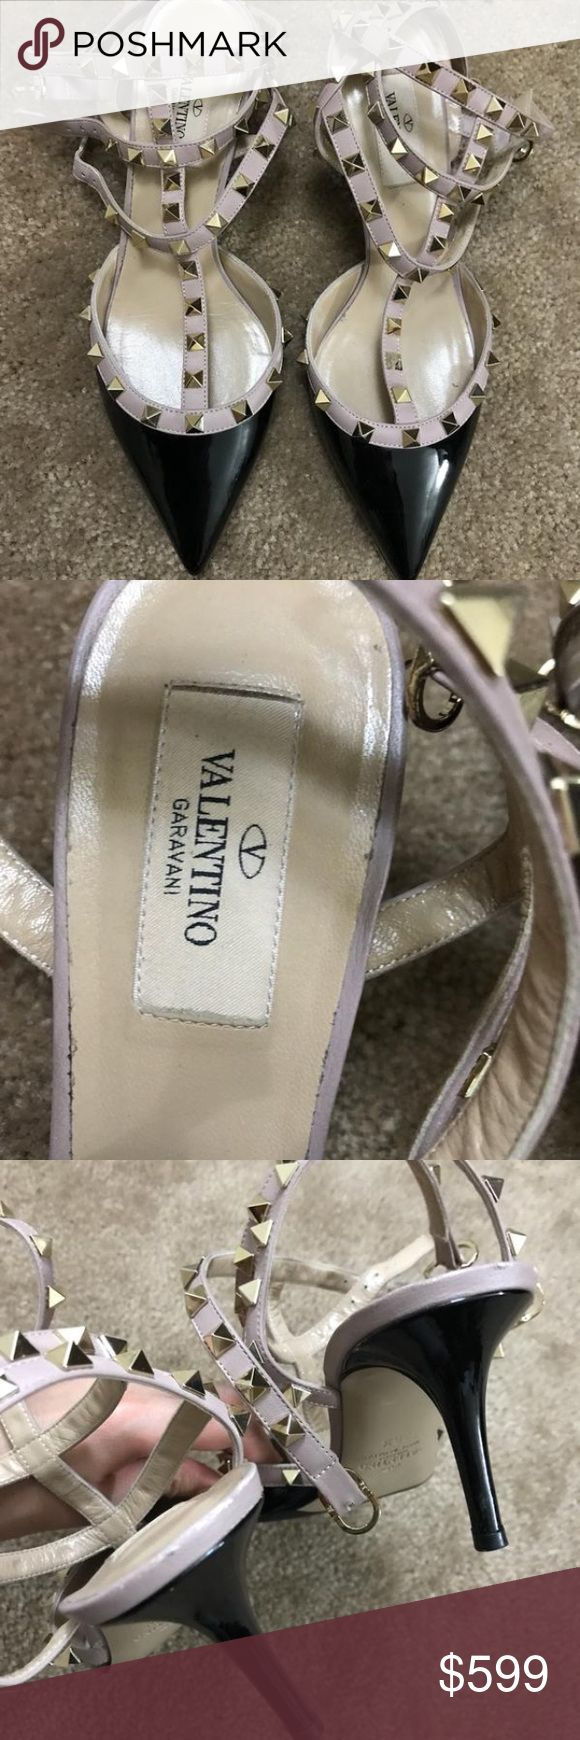 Valentino size 39 rockstud 3 inch heels Valentino rockstud black and nude patent leather. European size 39. Heel height: 2.5-3 inches. --REPAINTED SOLES (were already painted like this when purchased at nord rack.) WILL BE AUTHENTICATED BY POSHMARK CONCIERGE Valentino Shoes Heels